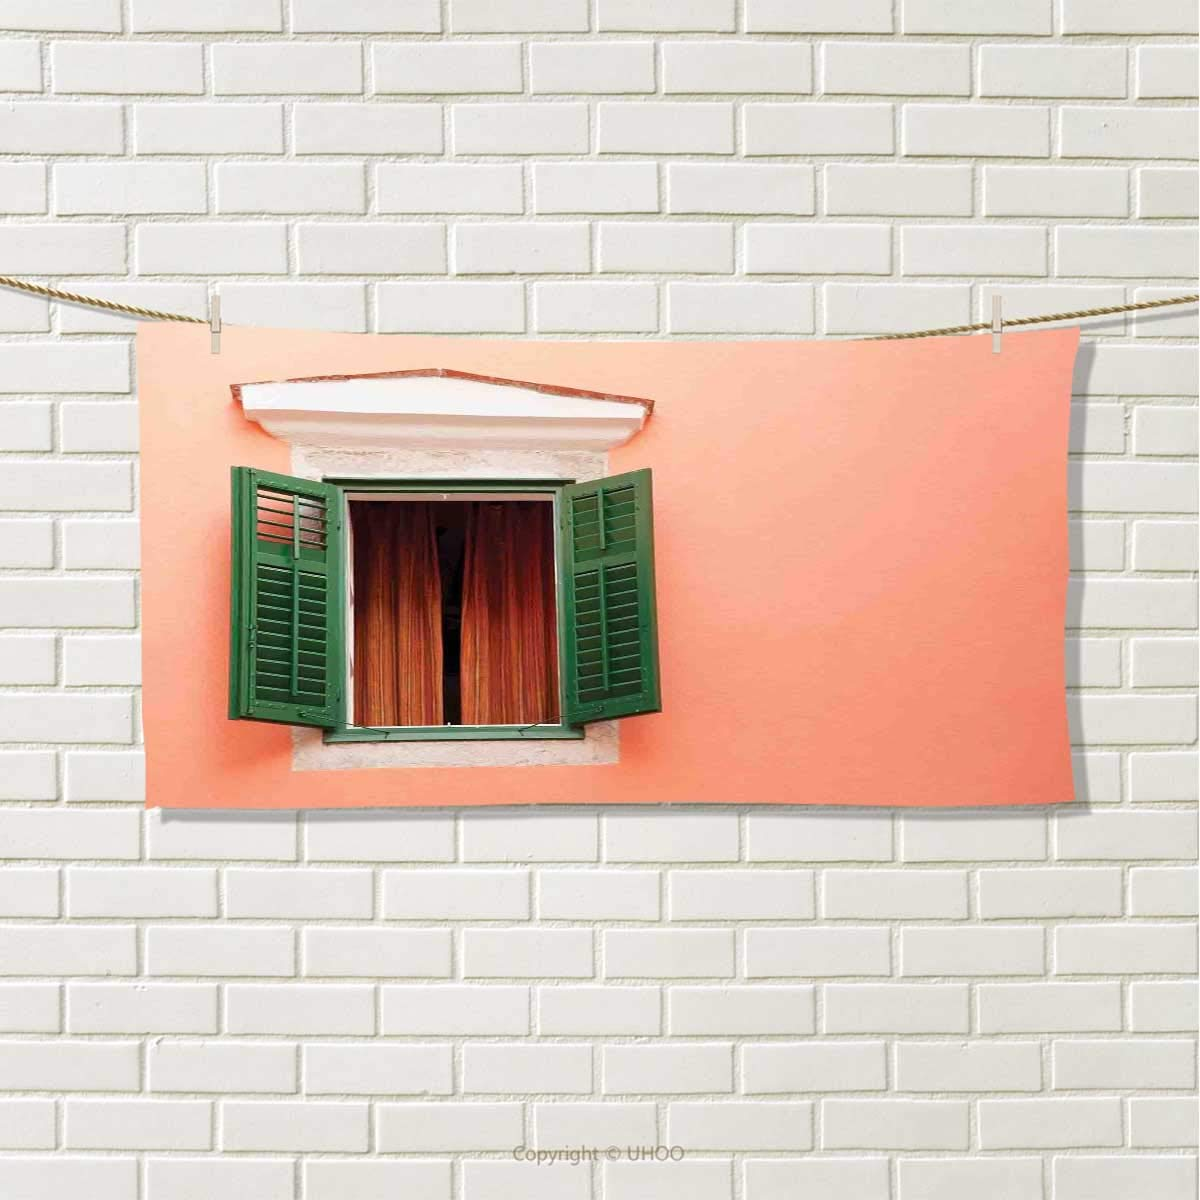 Anshuone Country,Travel Towel,Mediterranean Style Image of Window and Shutters Old House Rural Rustic,100% Microfiber,Orange Green White,Size: W 12'' x L 27.5''